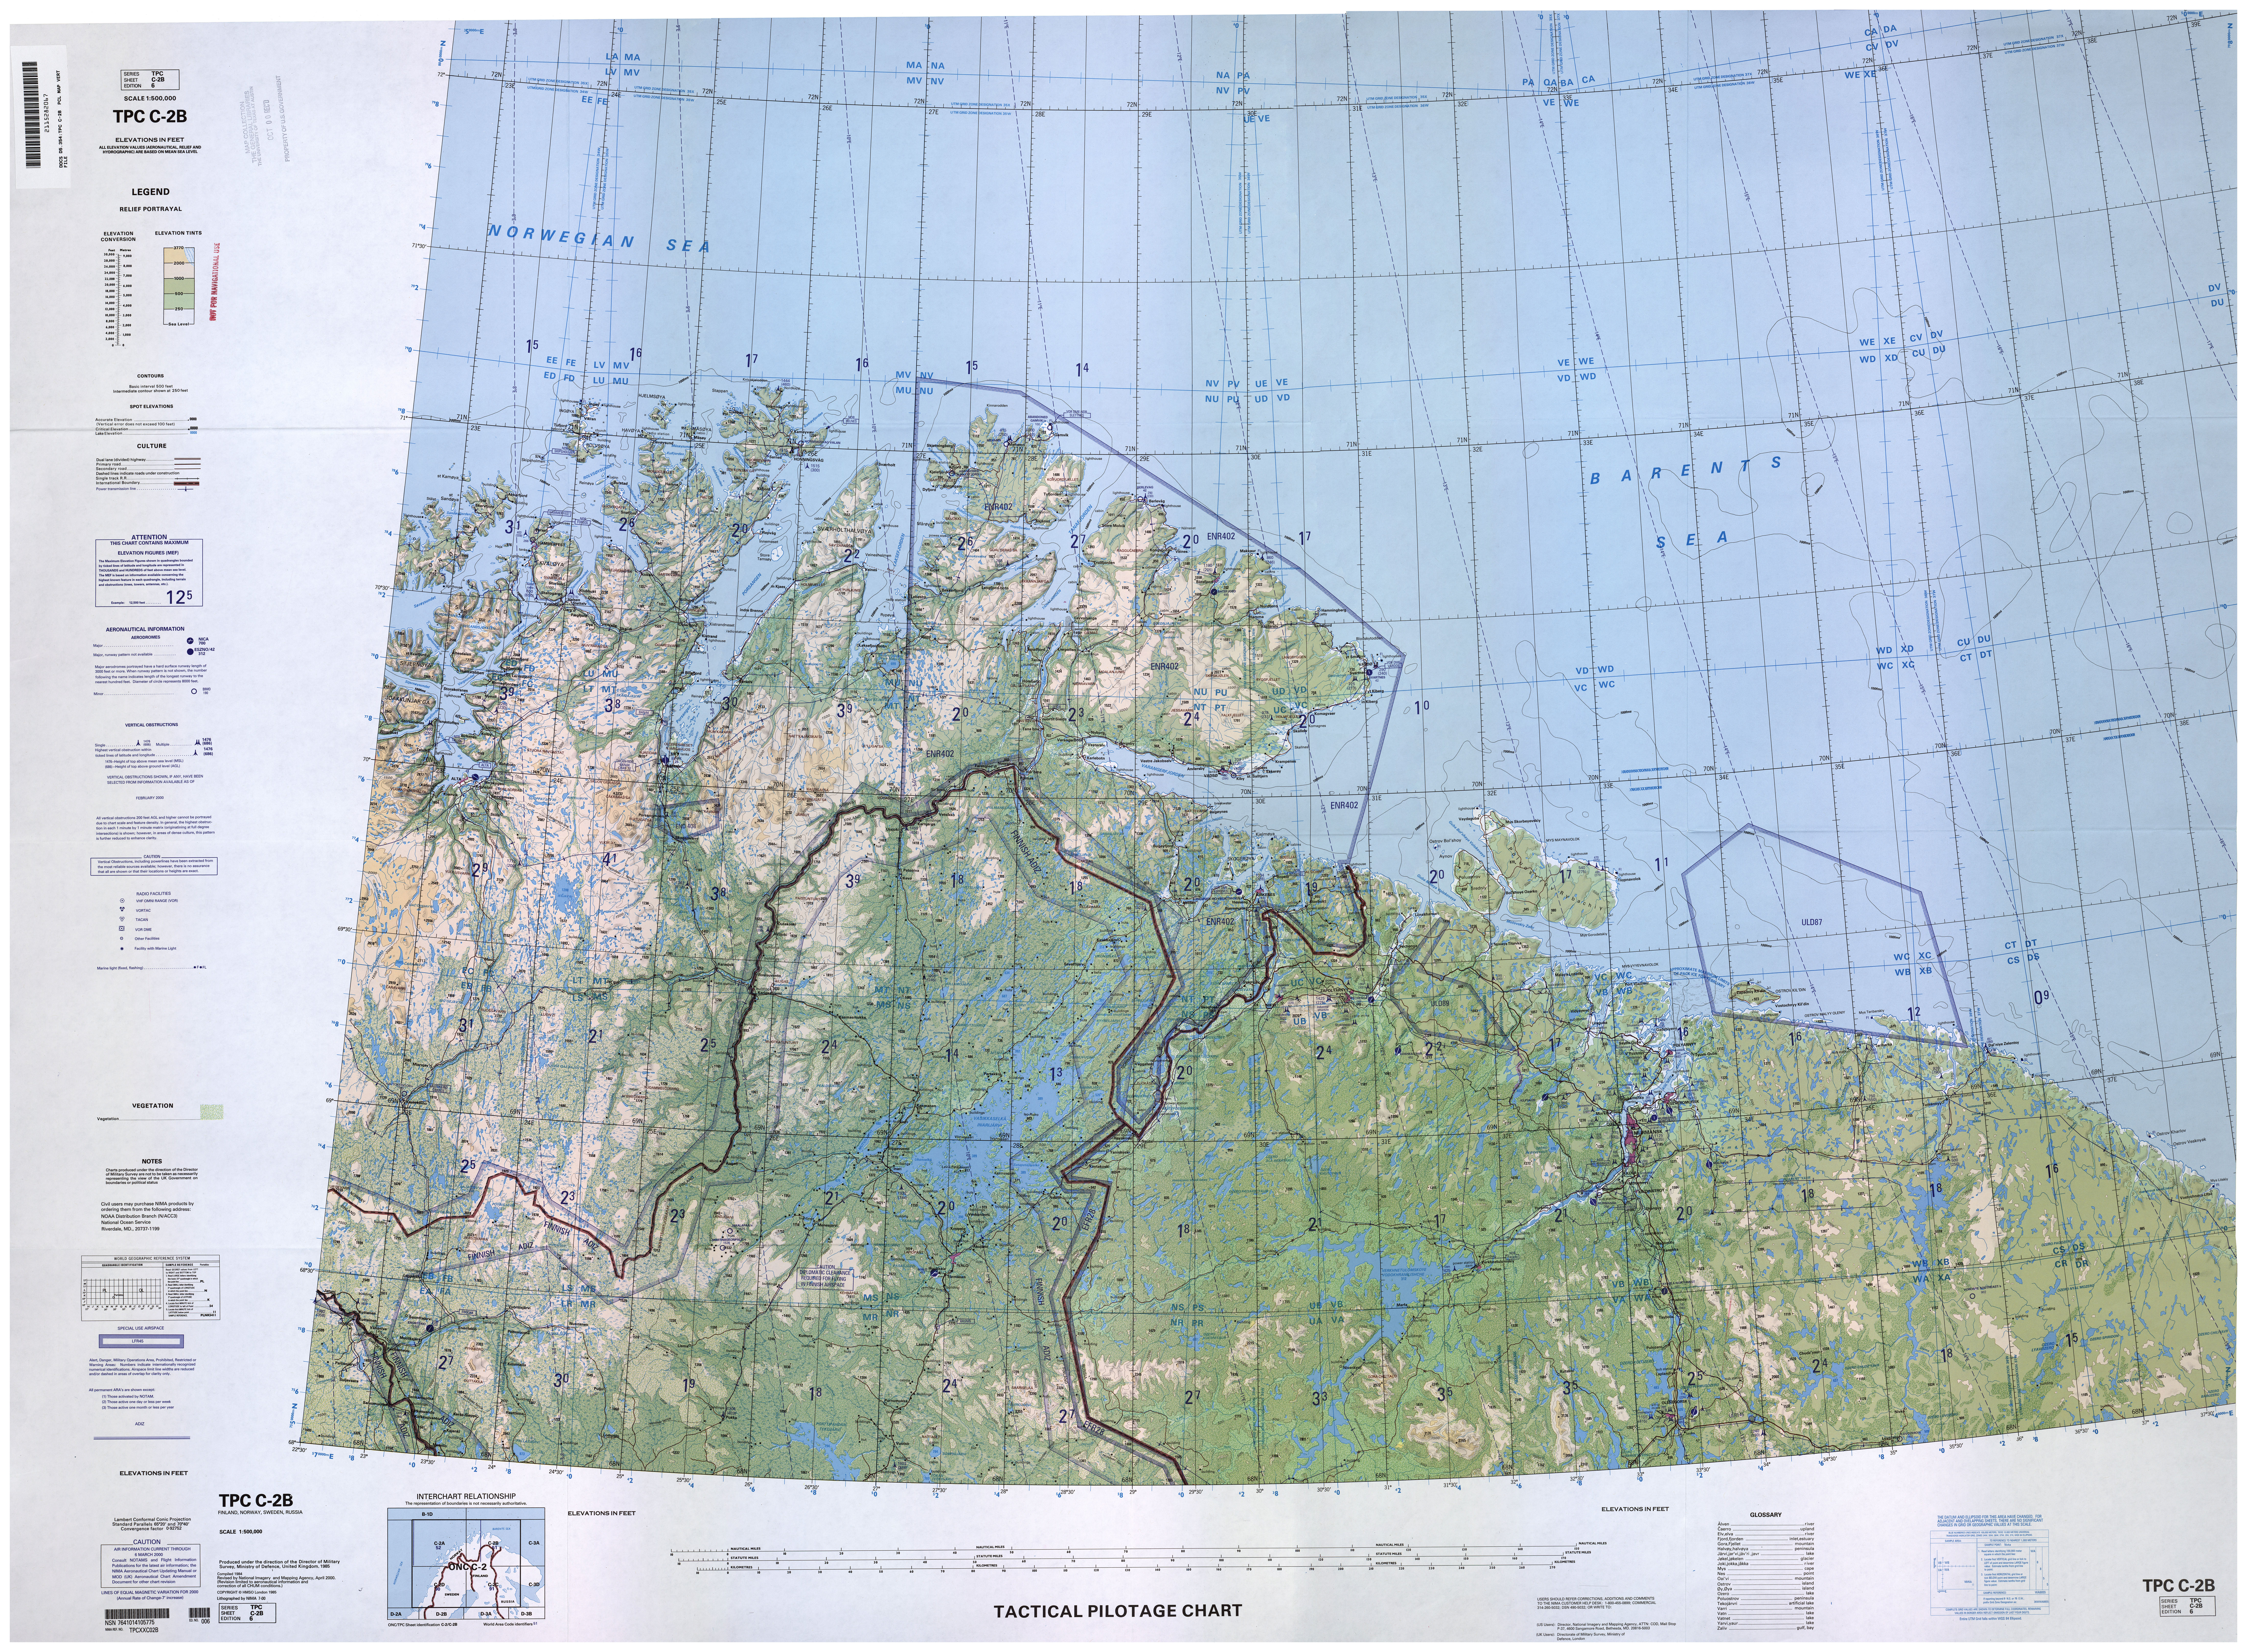 Tactical Pilotage Charts PerryCastañeda Map Collection UT - Sweden russia map